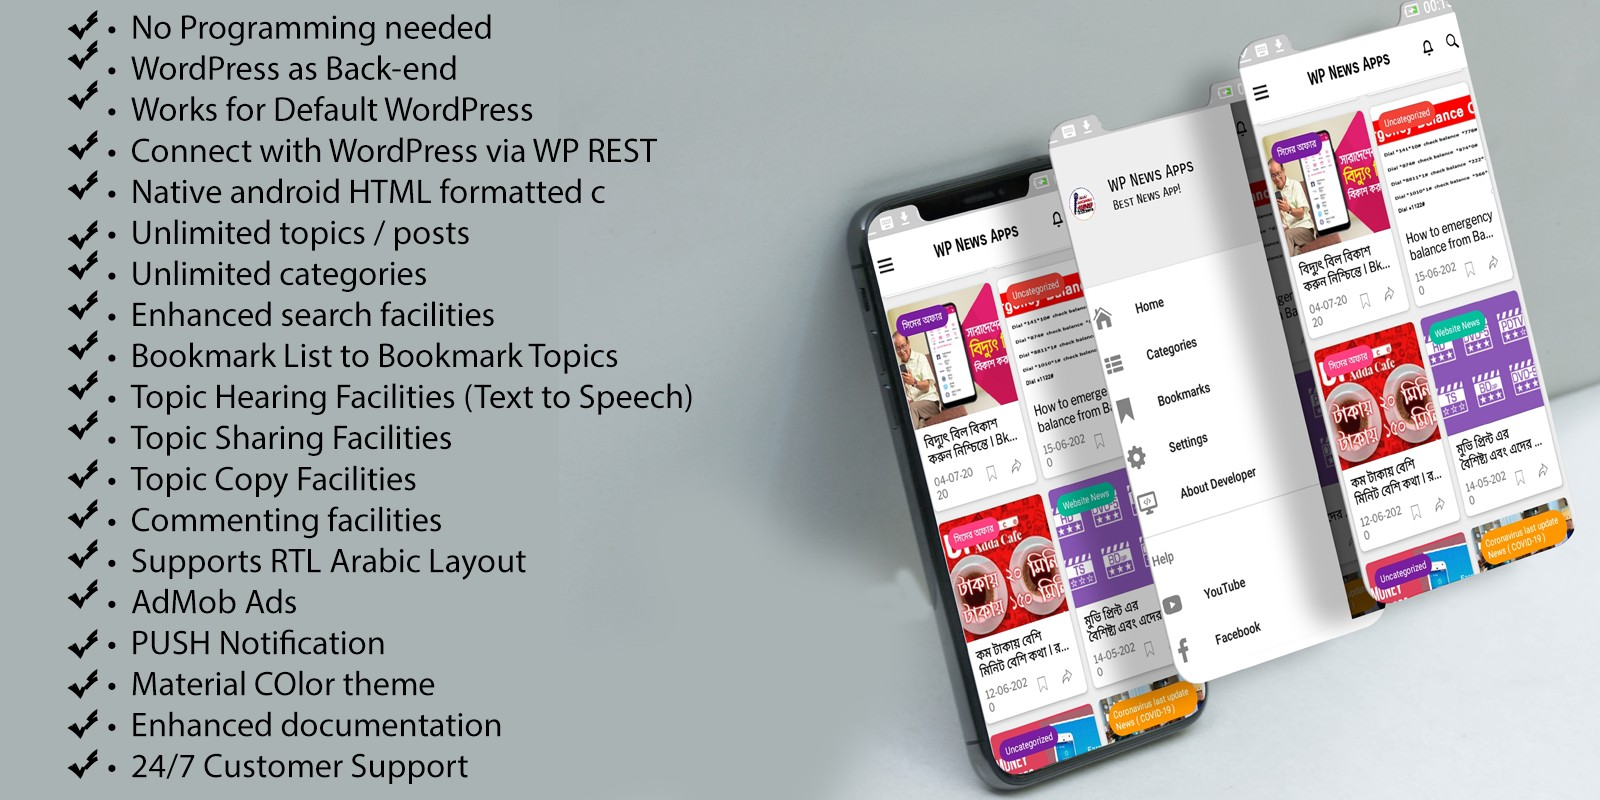 WP New Apps - WordPress to Android App